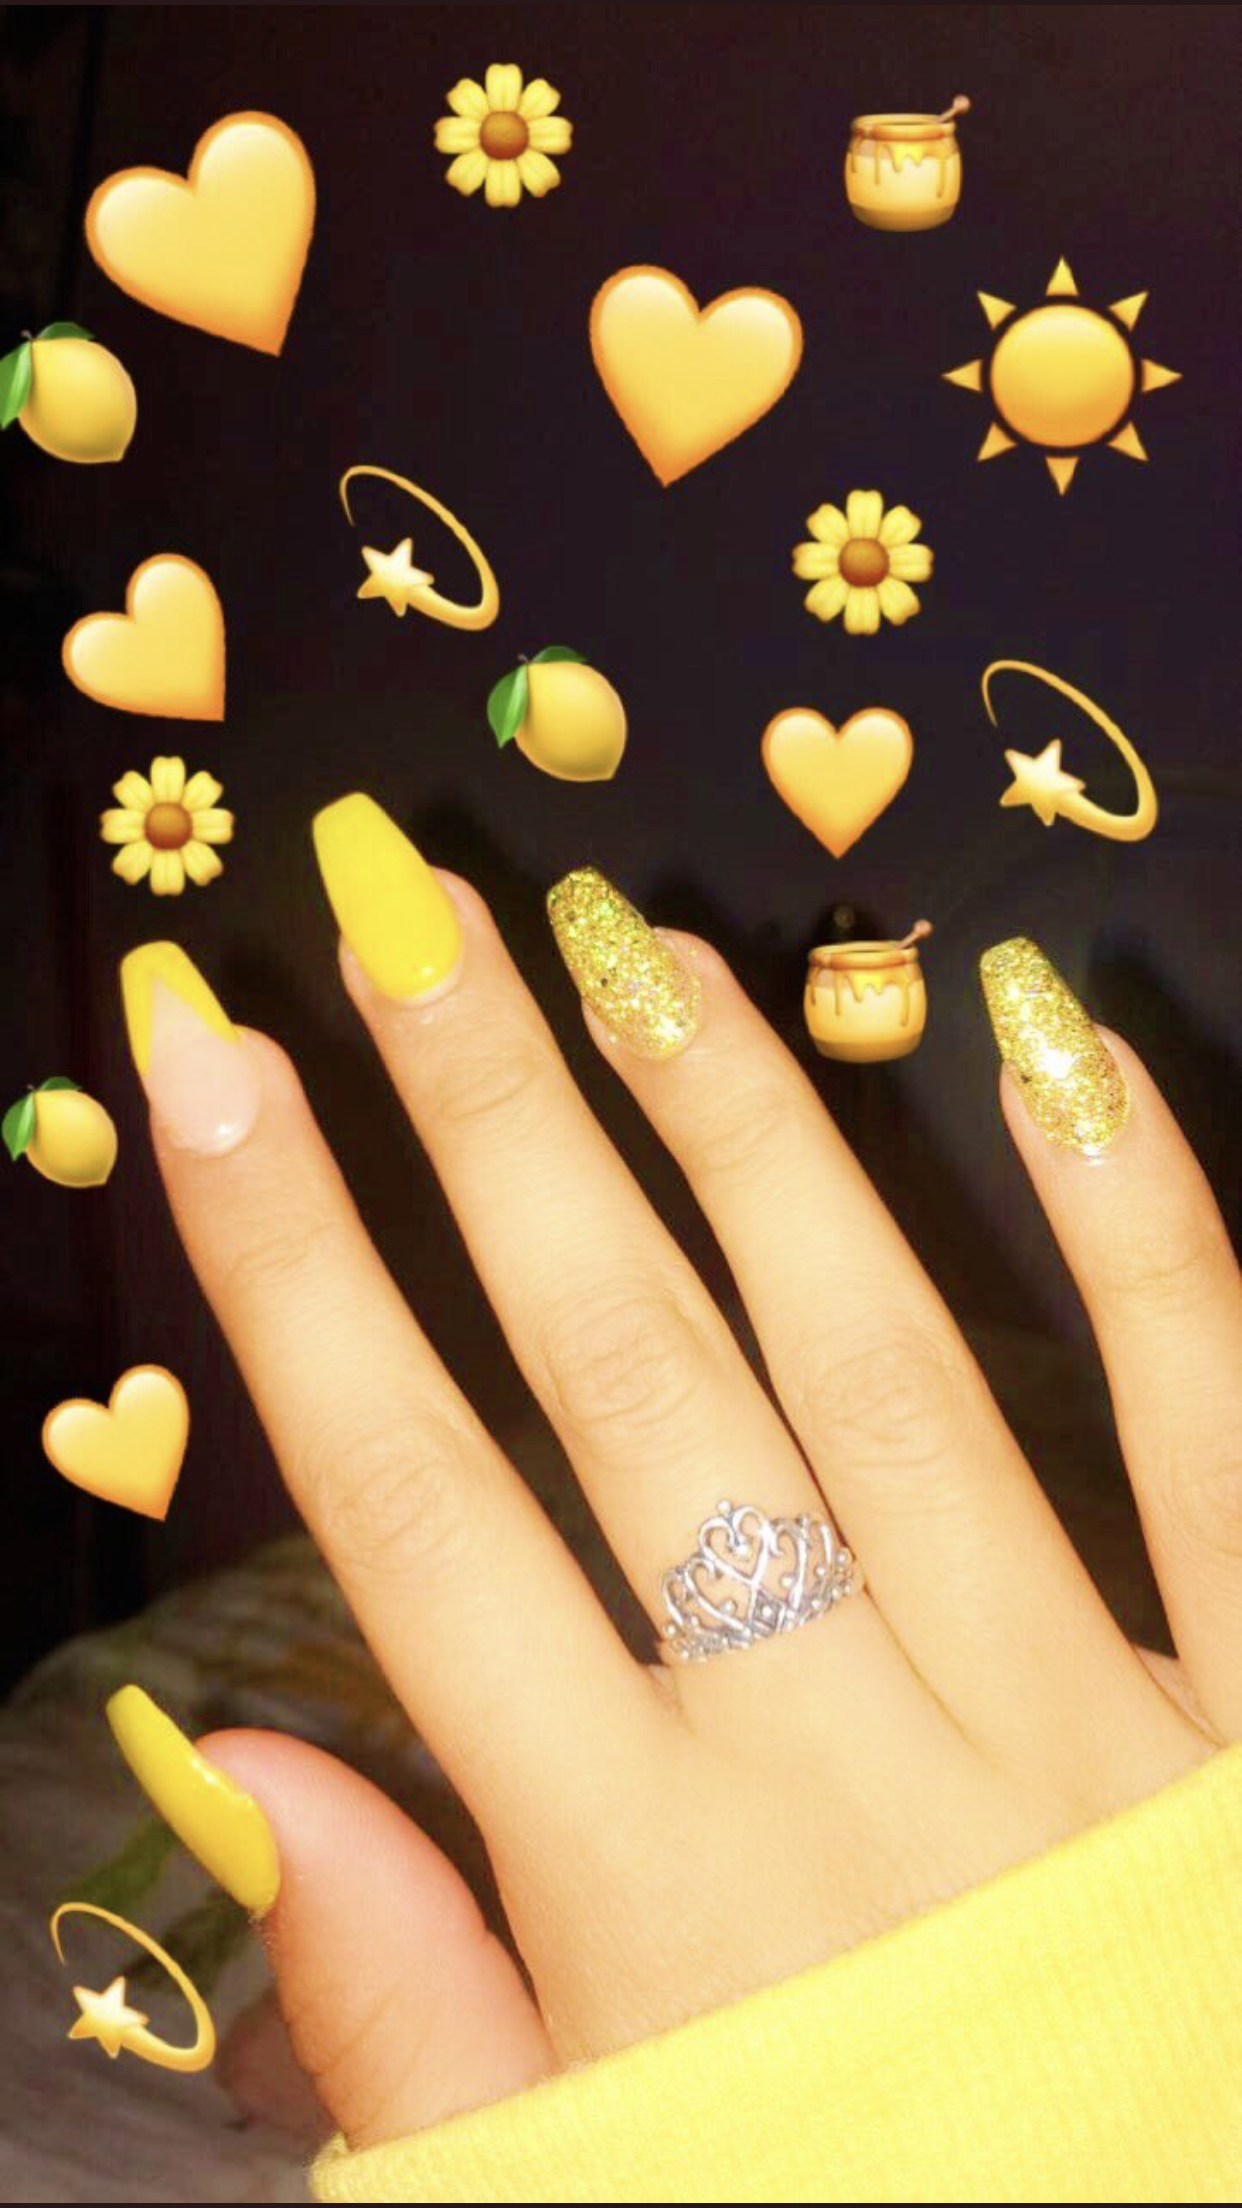 Pin by Simplyy.nevaeh on Nail ideas